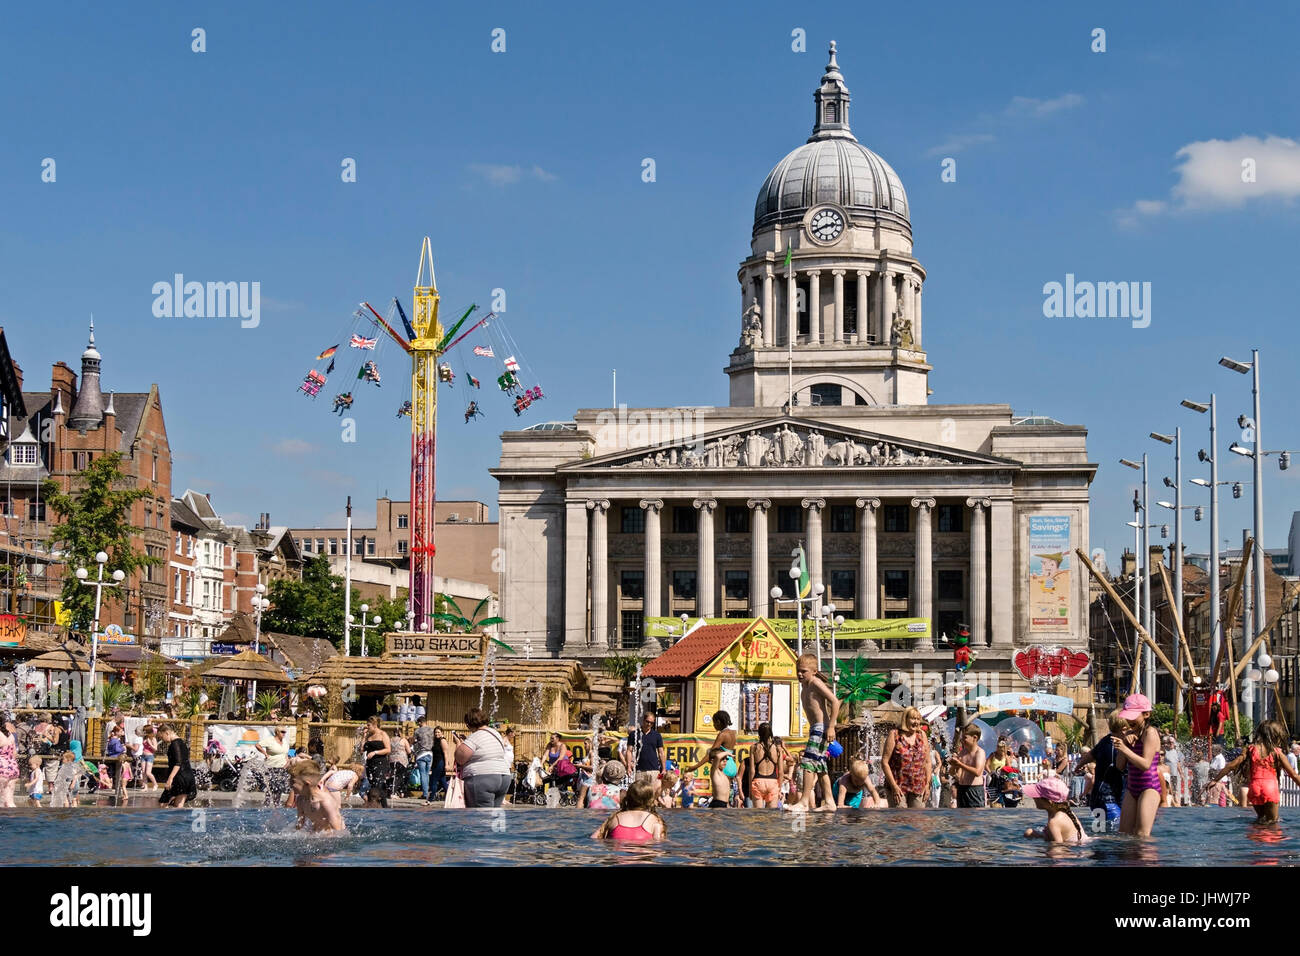 Children playing in water fountains in Old Market Square during Nottingham Beach 2016 Summer fare with Nottingham - Stock Image